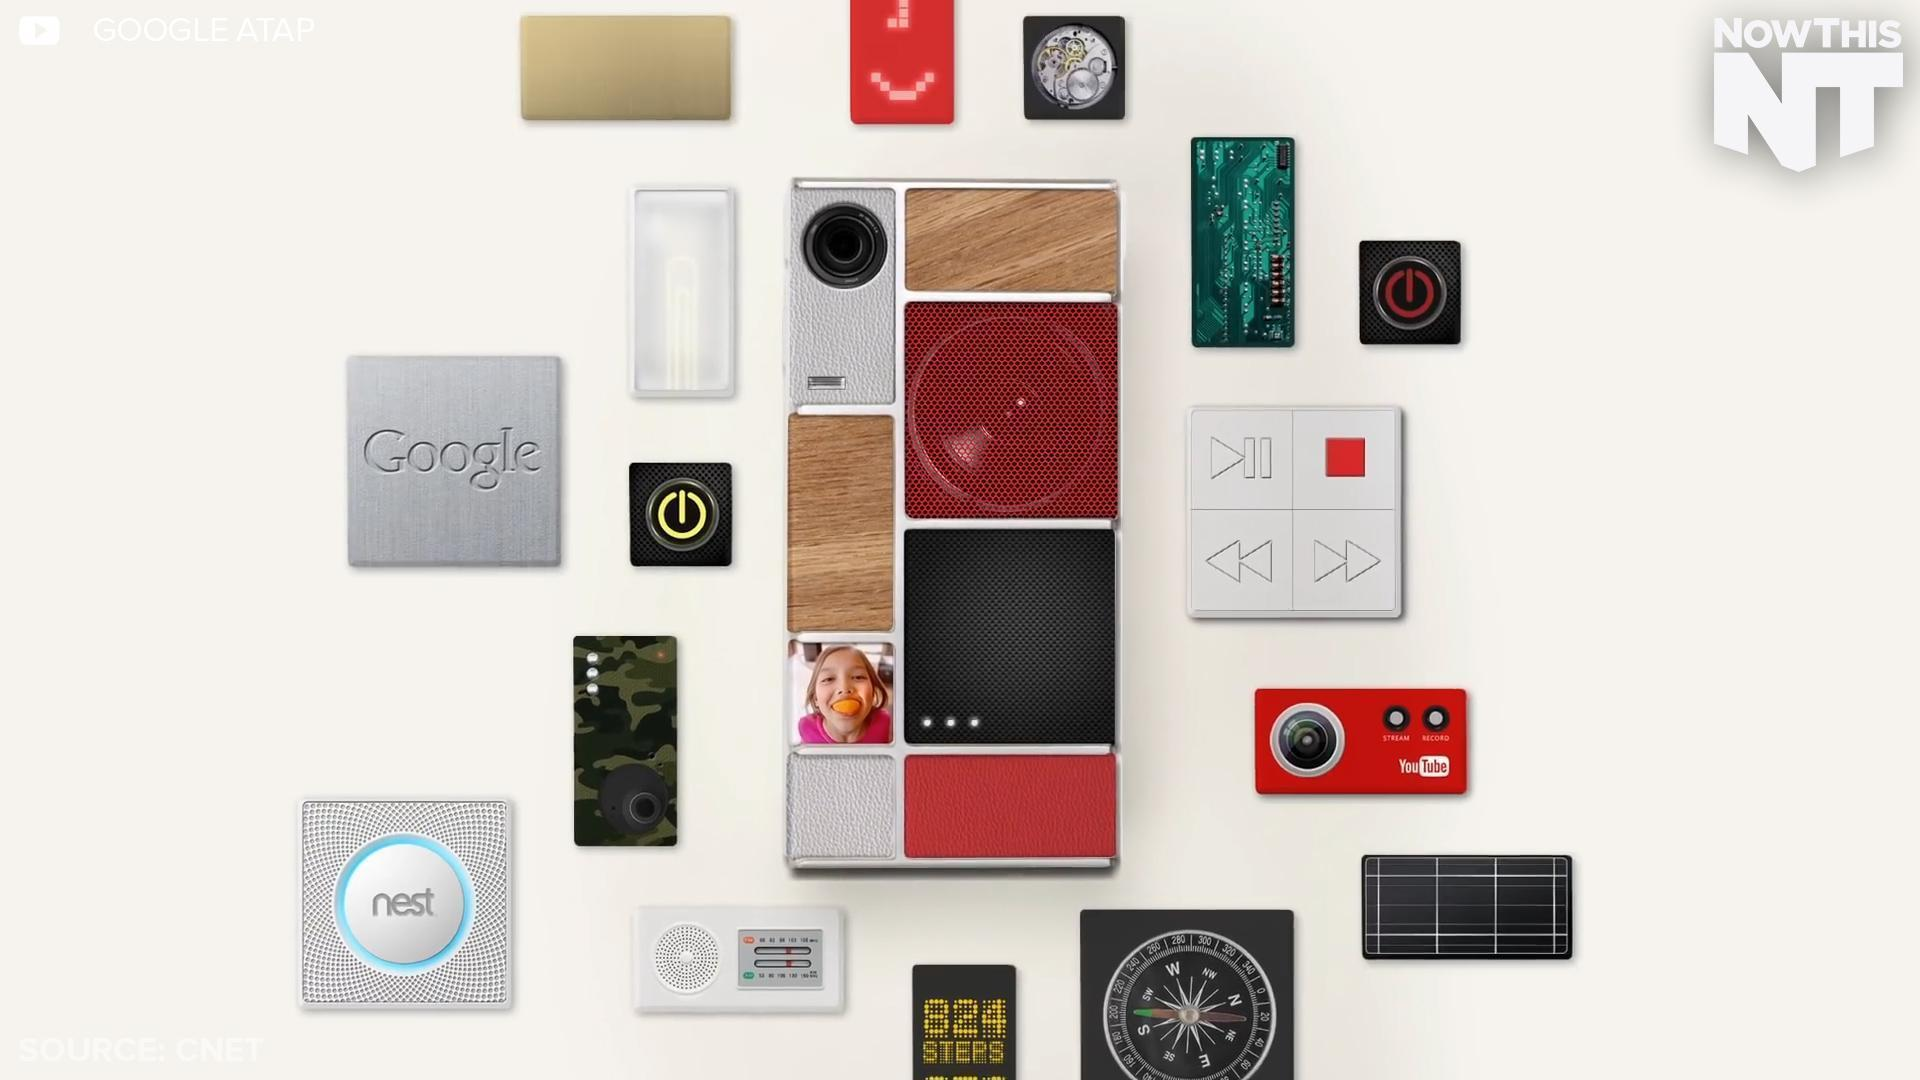 Google's New Modular Phones Lets You Customize Hardware